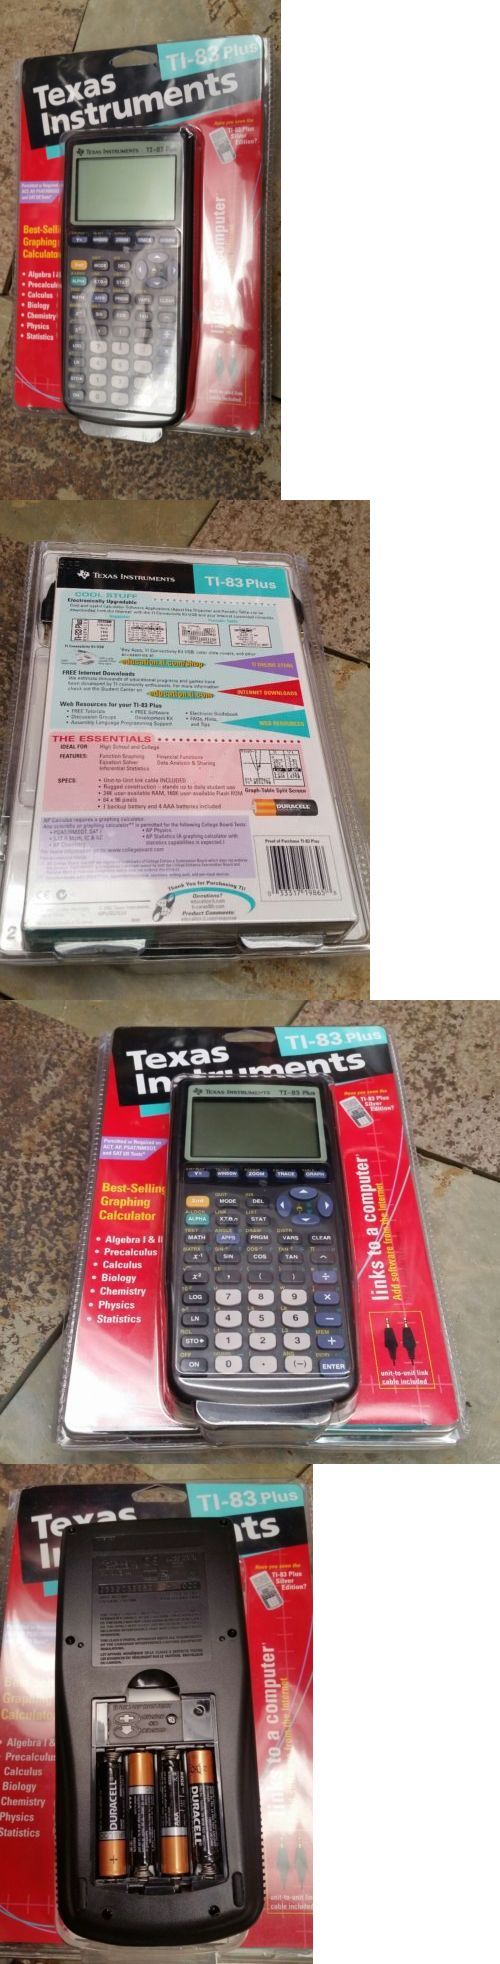 Calculators Texas Instruments Ti 83 Plus Graphing Calculator Buy It Now  Only Download Image How To